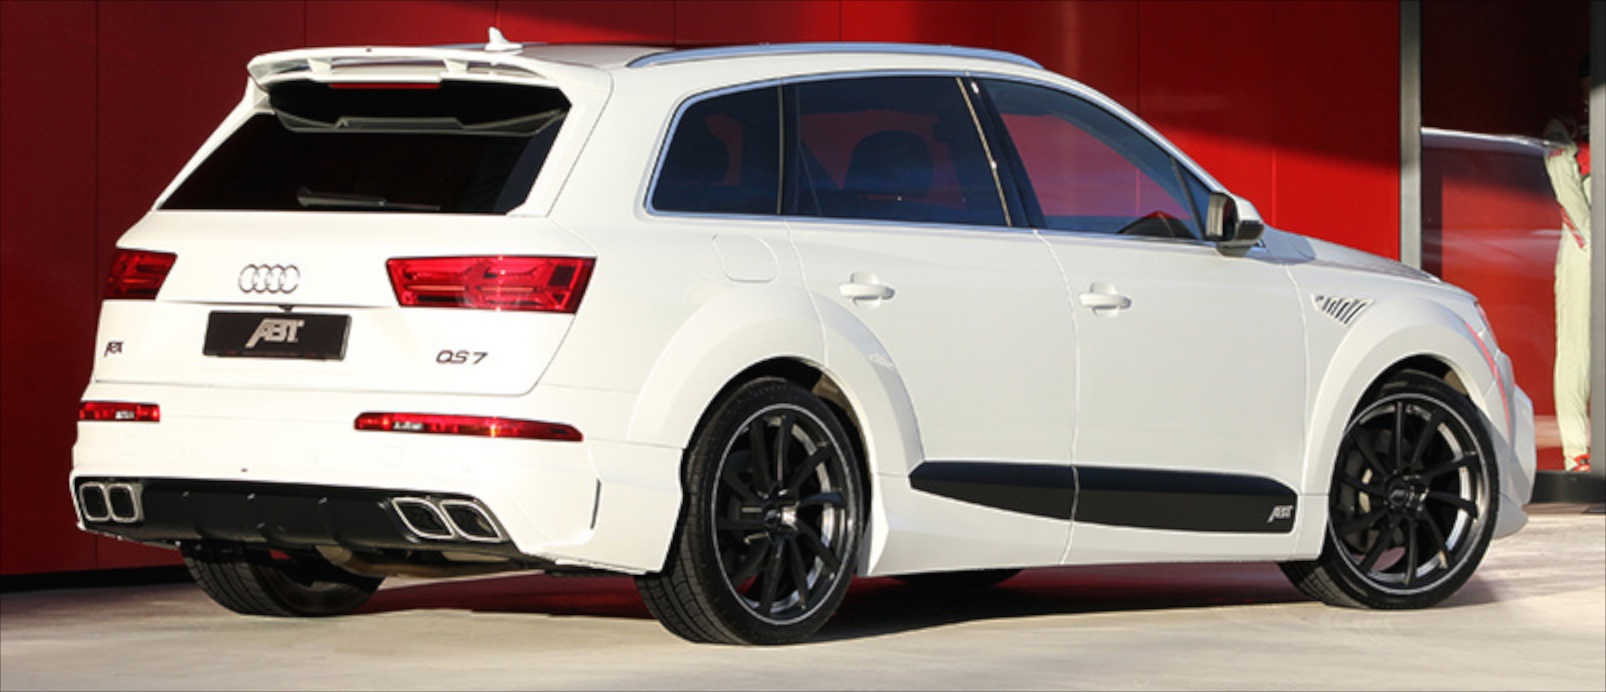 Abt Qs7 Power And Style Upgrades For The Audi Q7 Paul